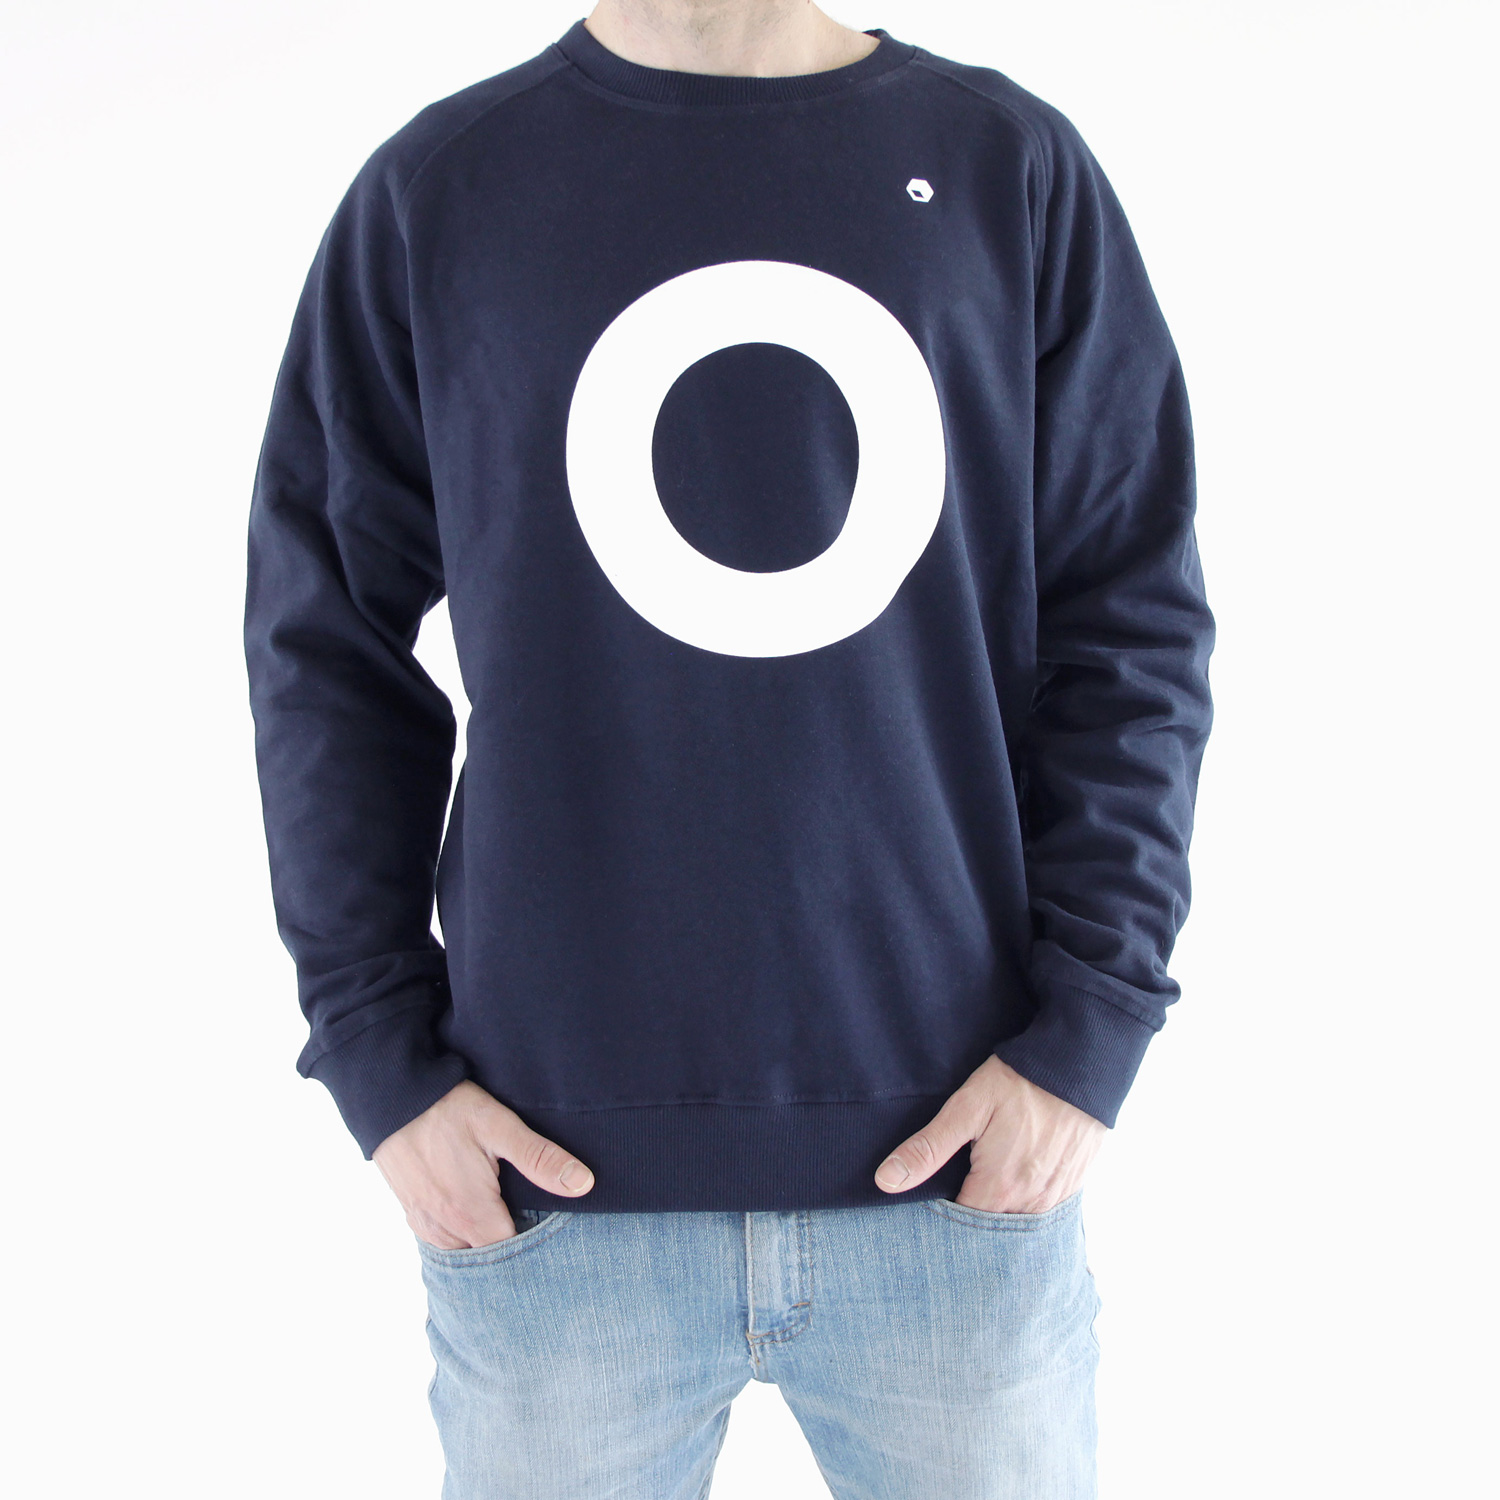 Flathold-apparel-sweat-o-navy